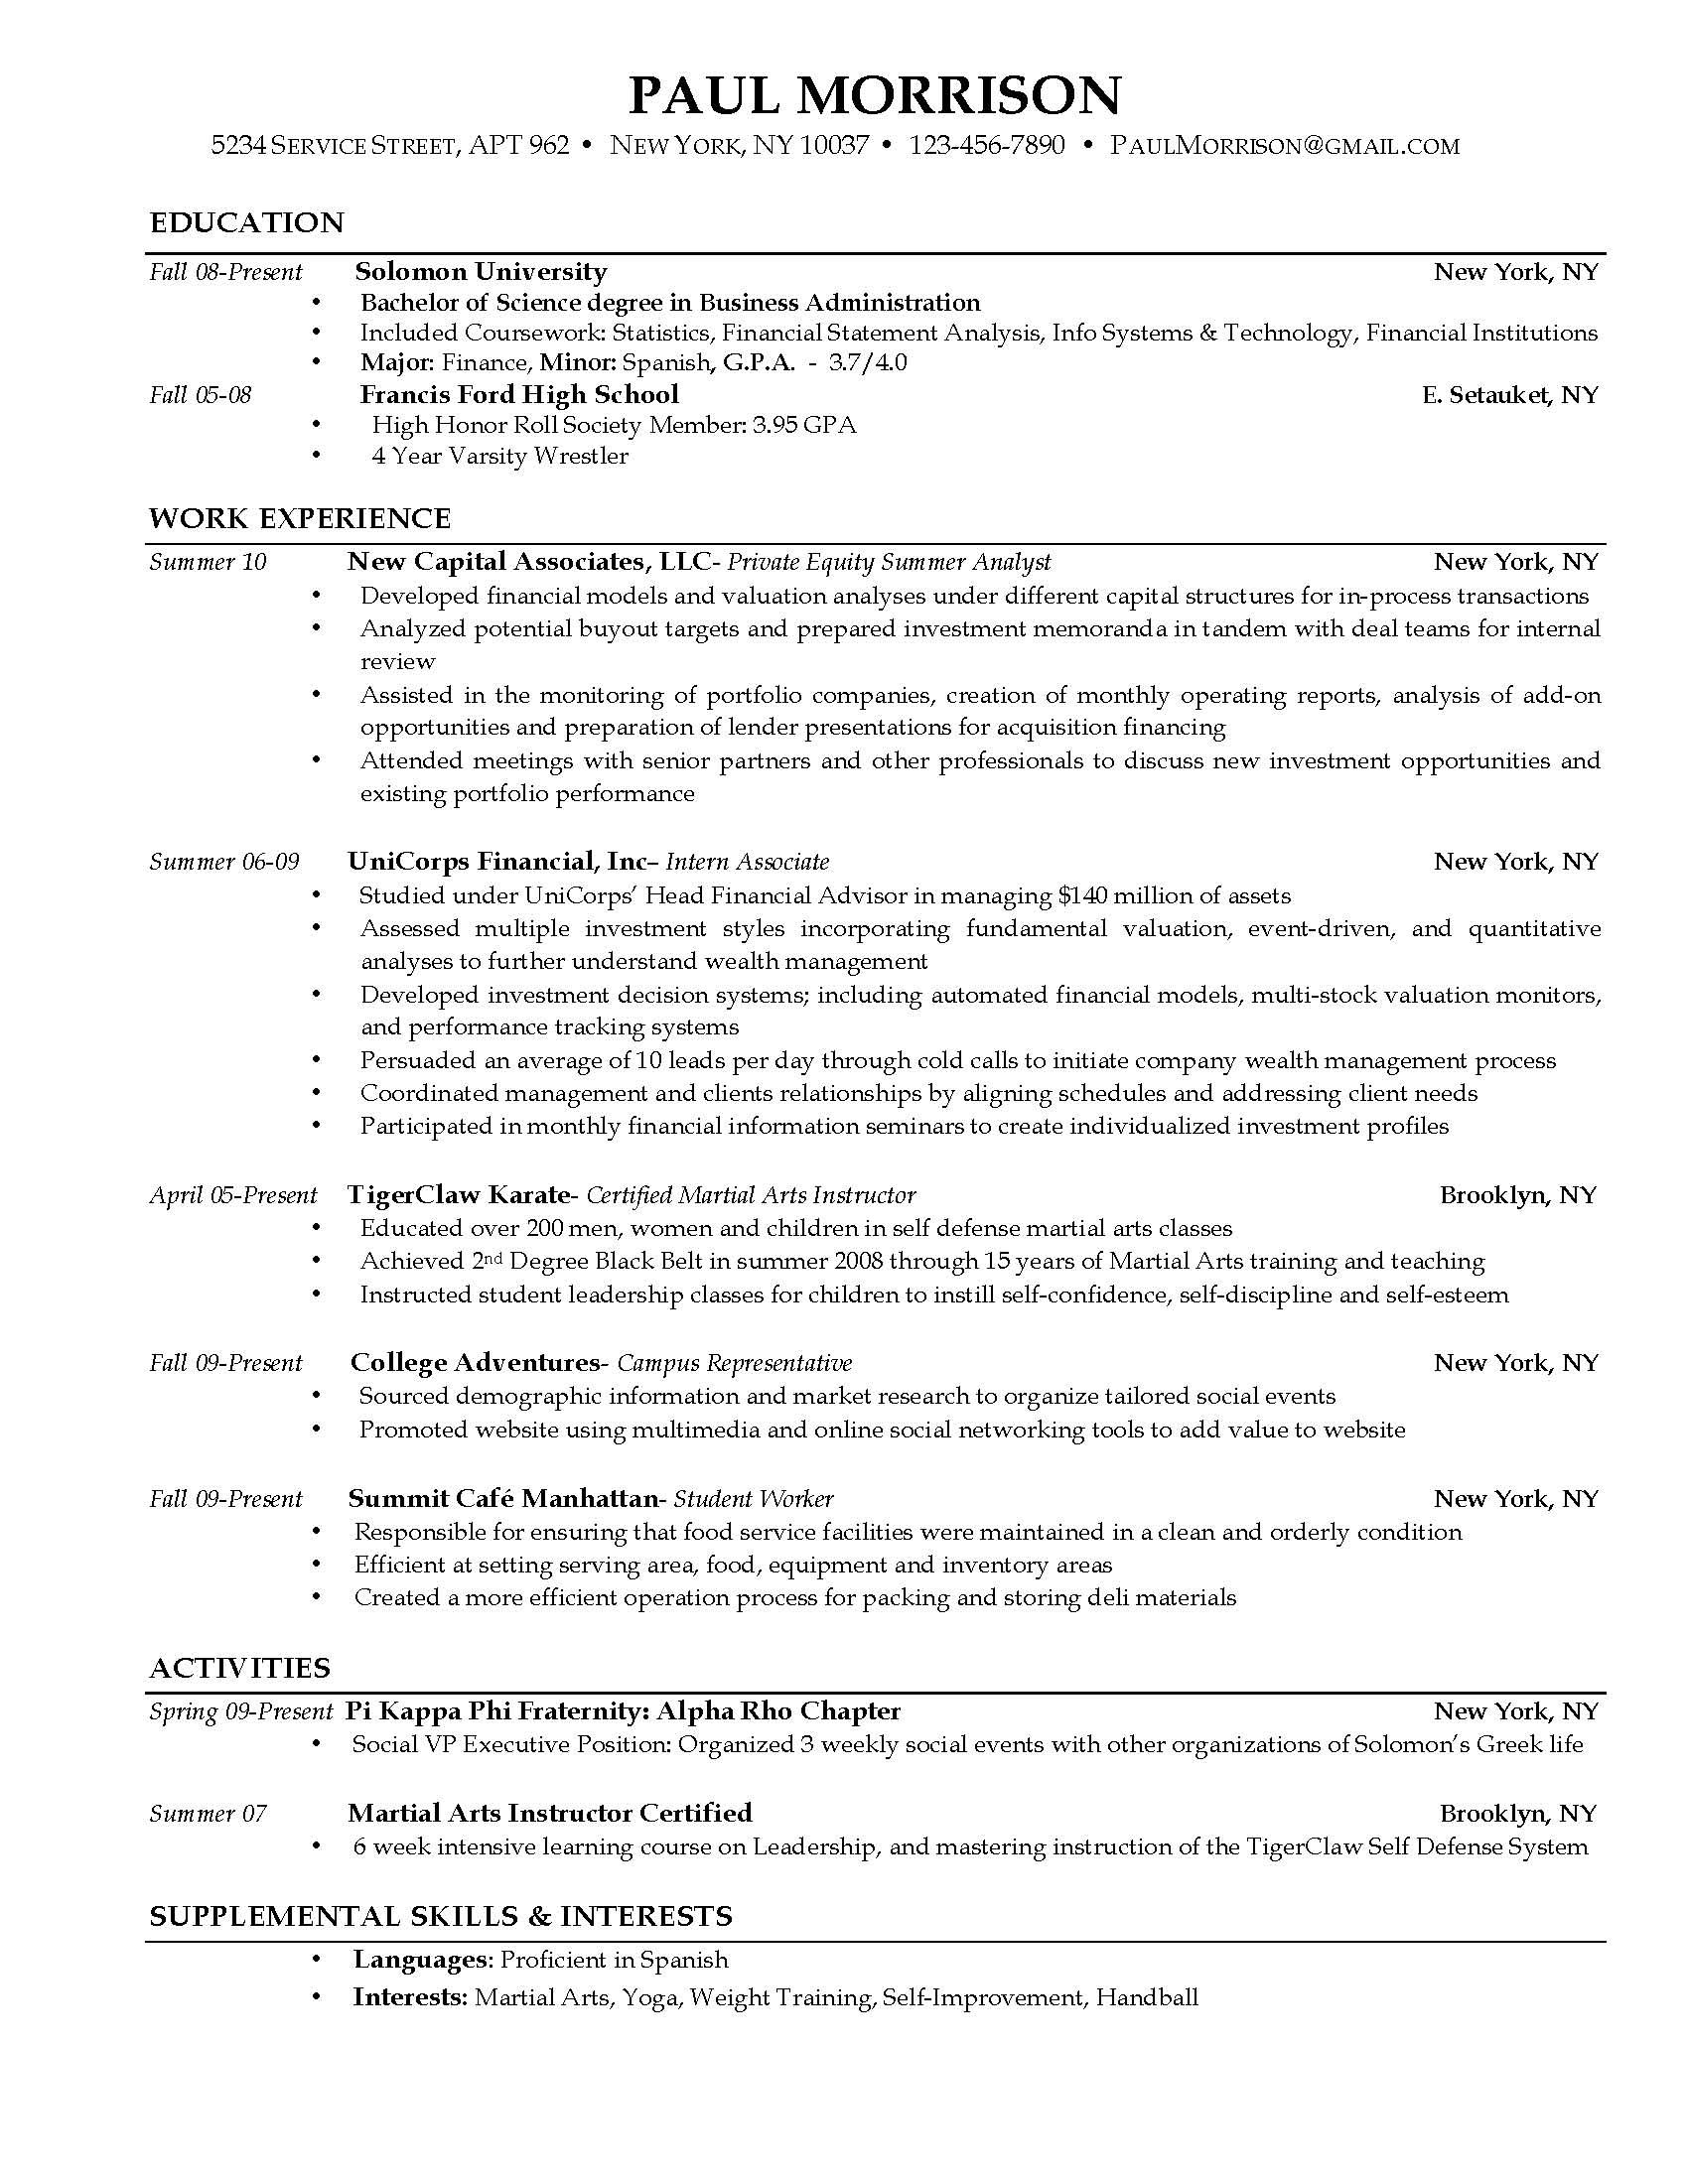 Pin by resumejob on Resume Job | Pinterest | Student resume, Student ...